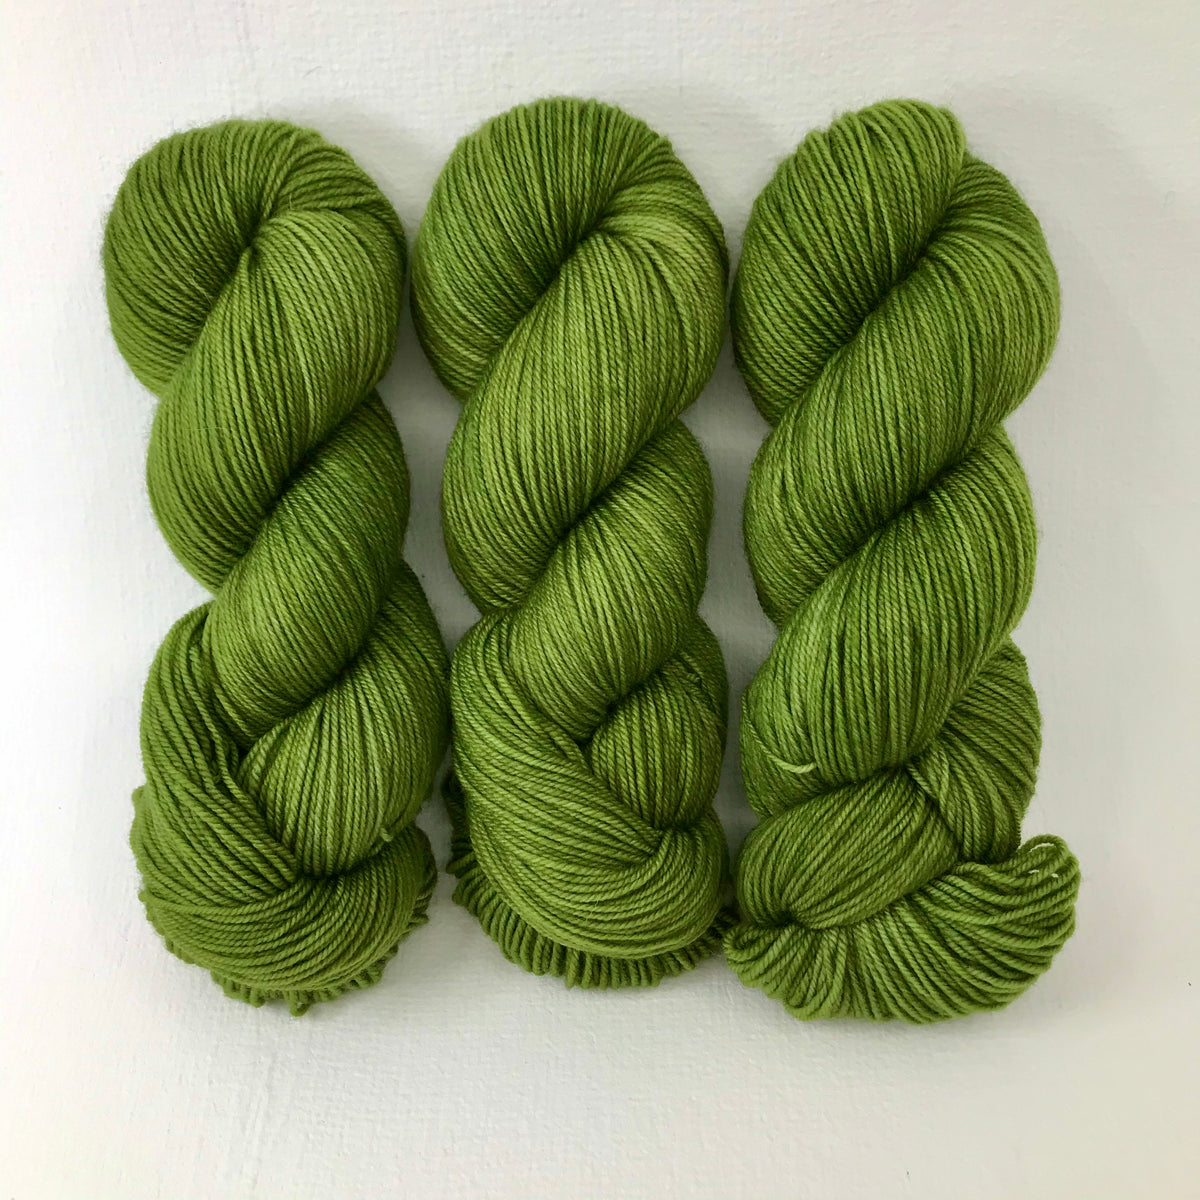 Mossy Bank in Fingering / Sock Weight